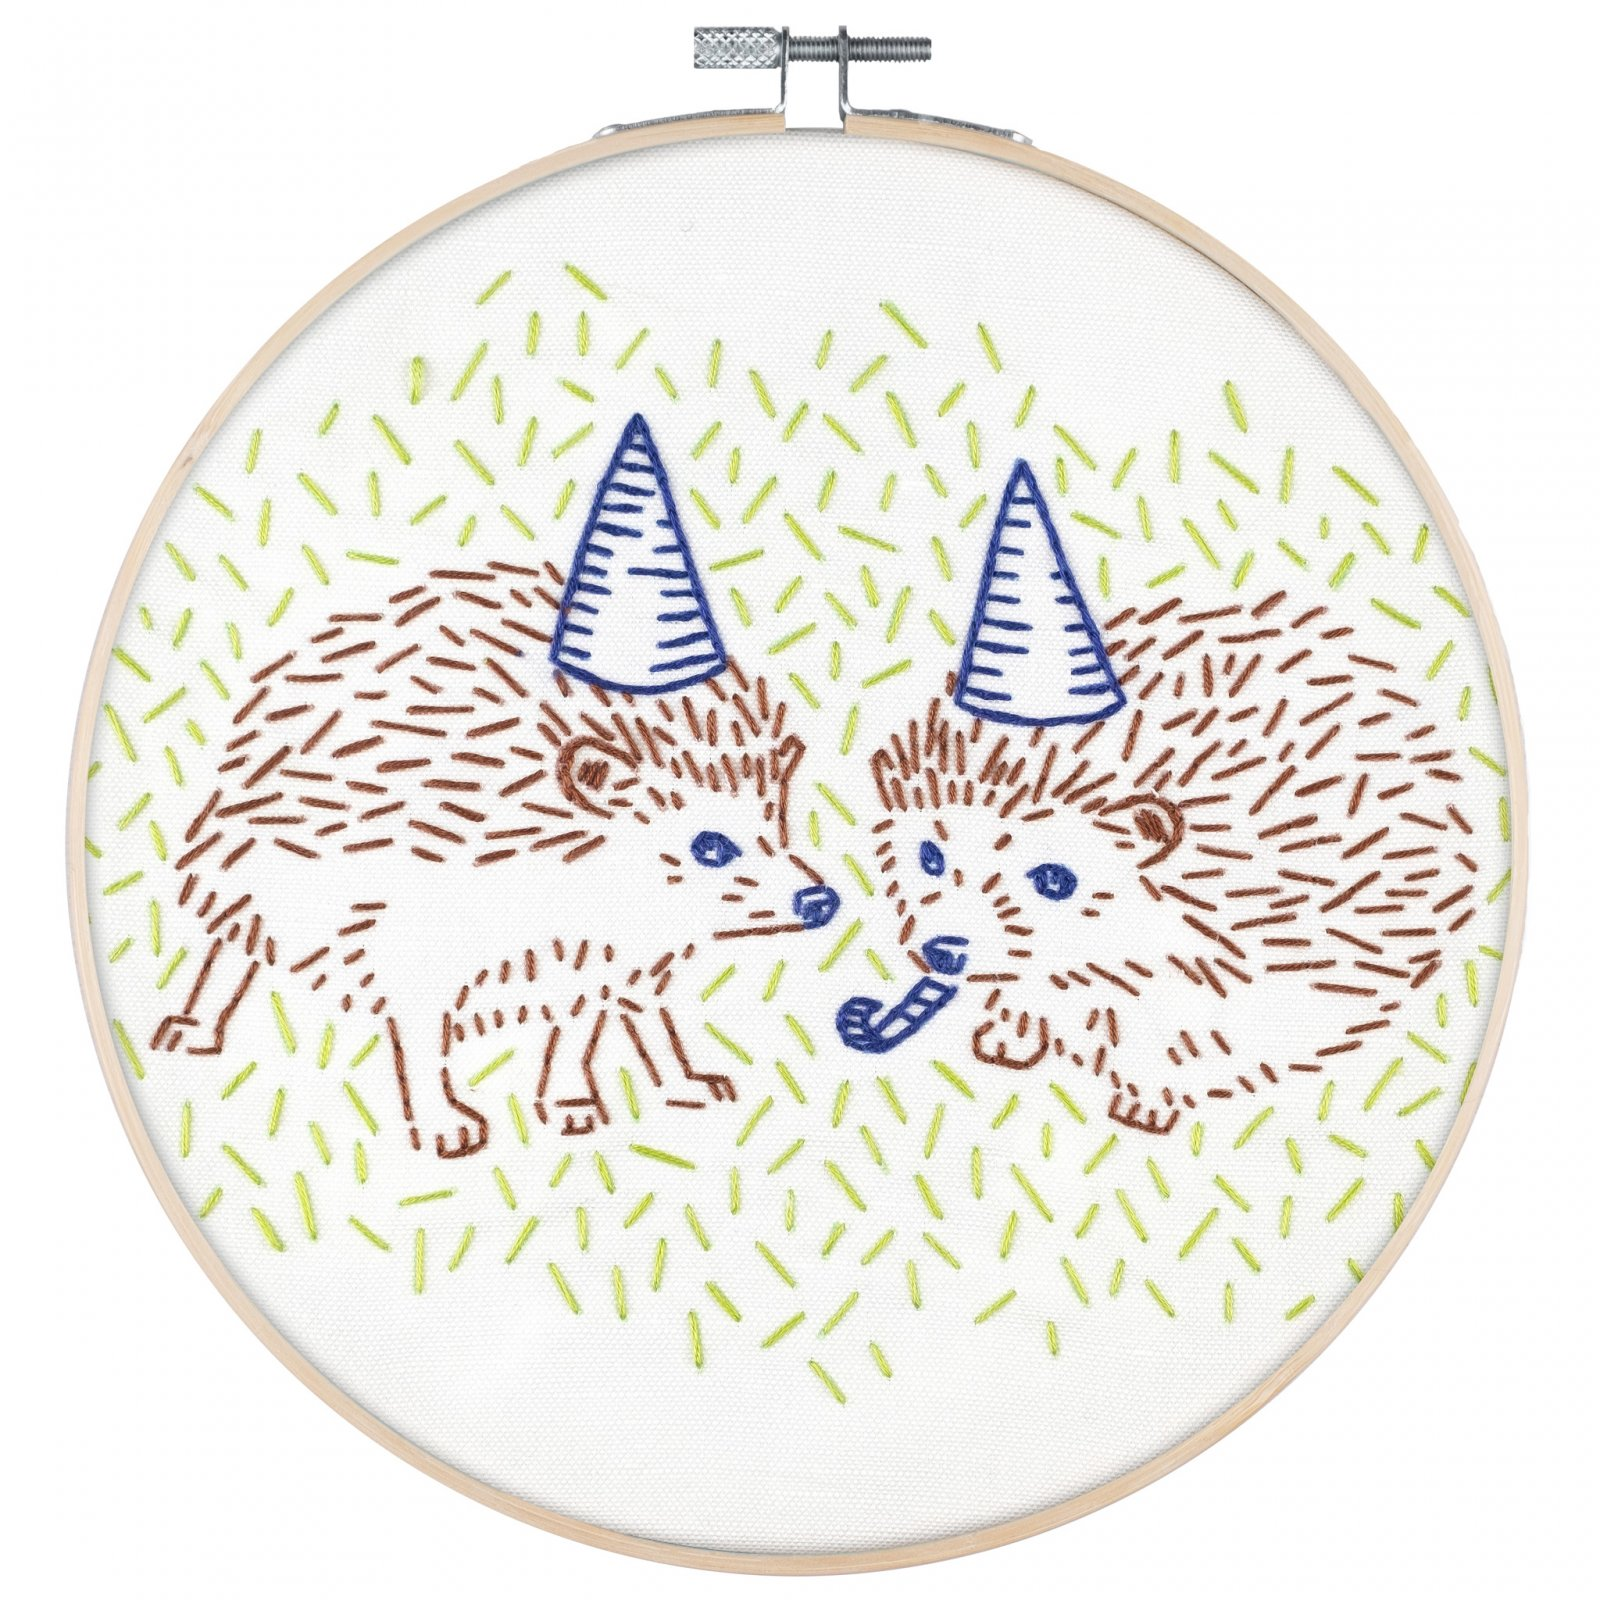 Hedgehog Party - PopLush Embroidery Kit 8